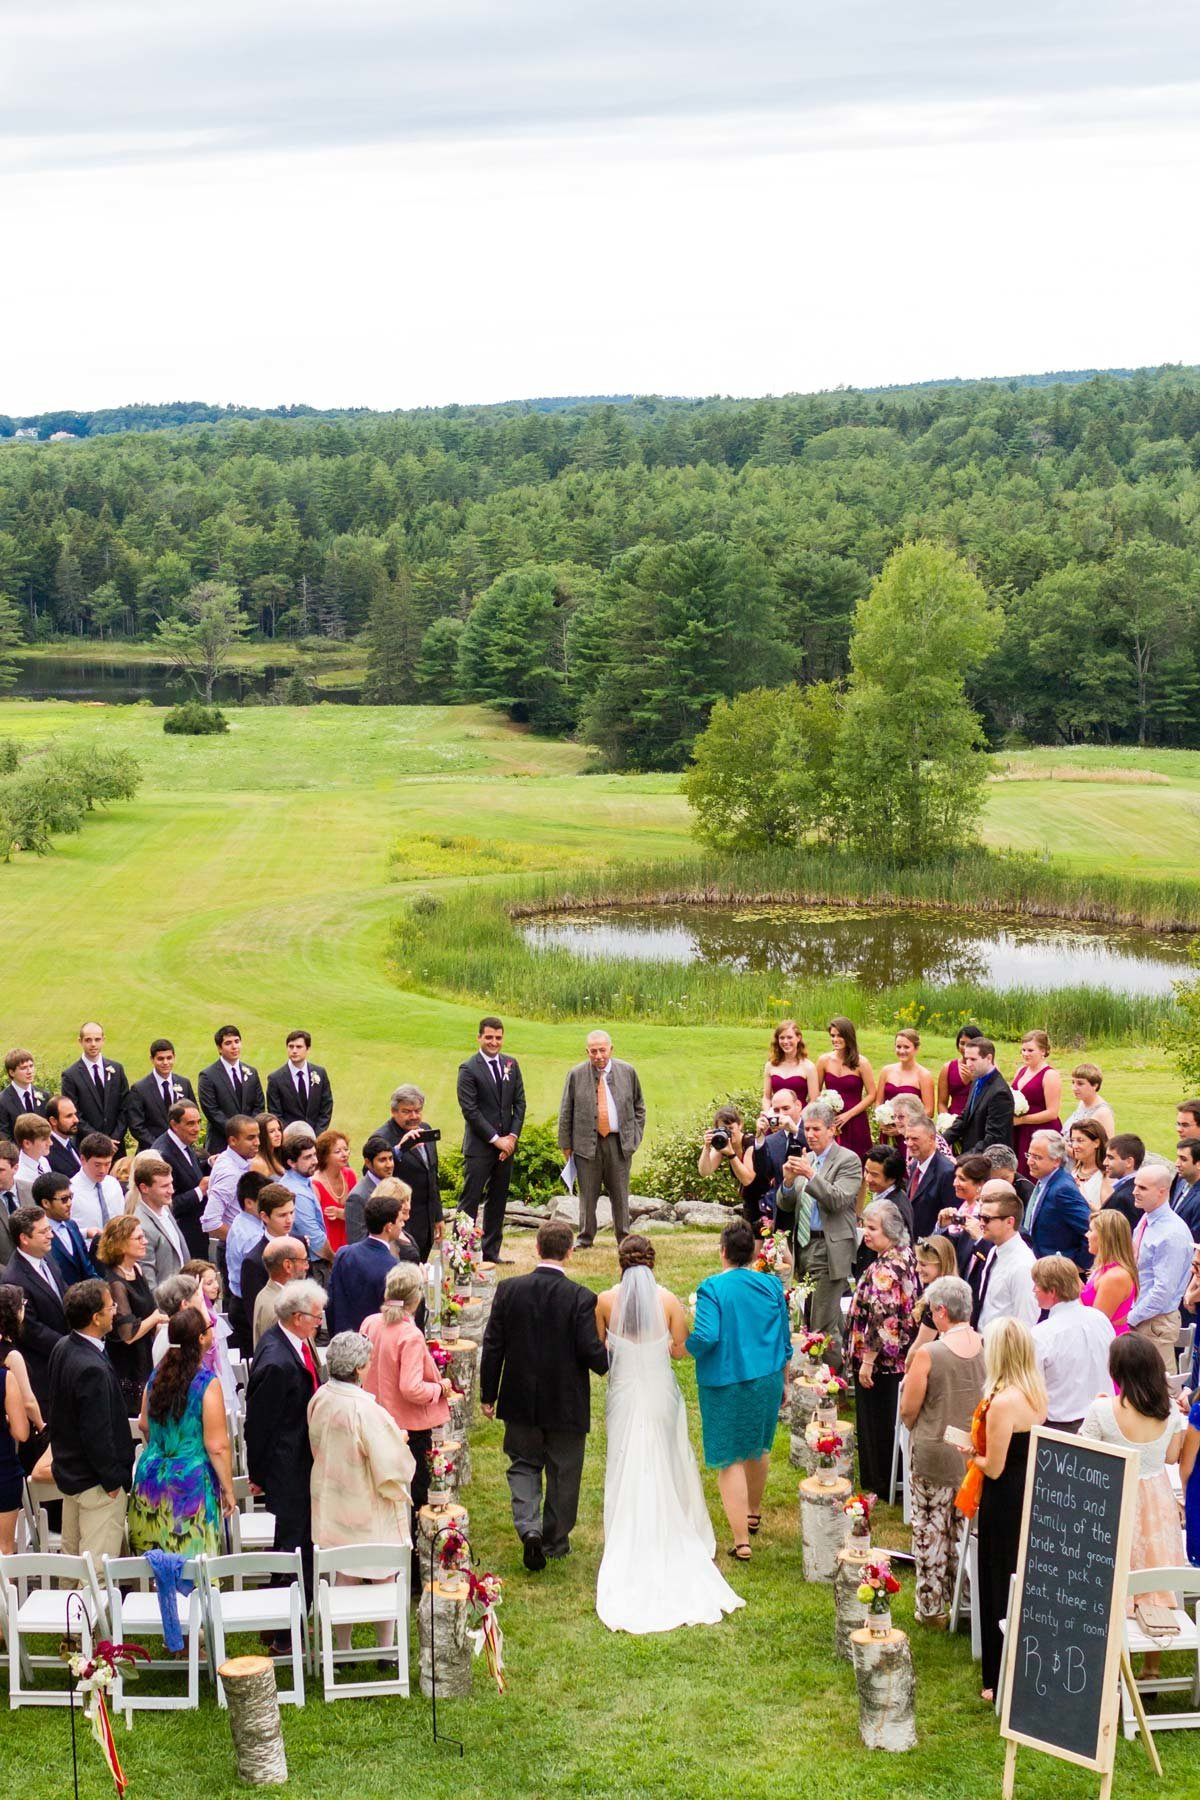 Clarks Cove Farm Maine Wedding Photographers Boothbay Harbor Outdoor Ceremony Image I am Sarah V Photography